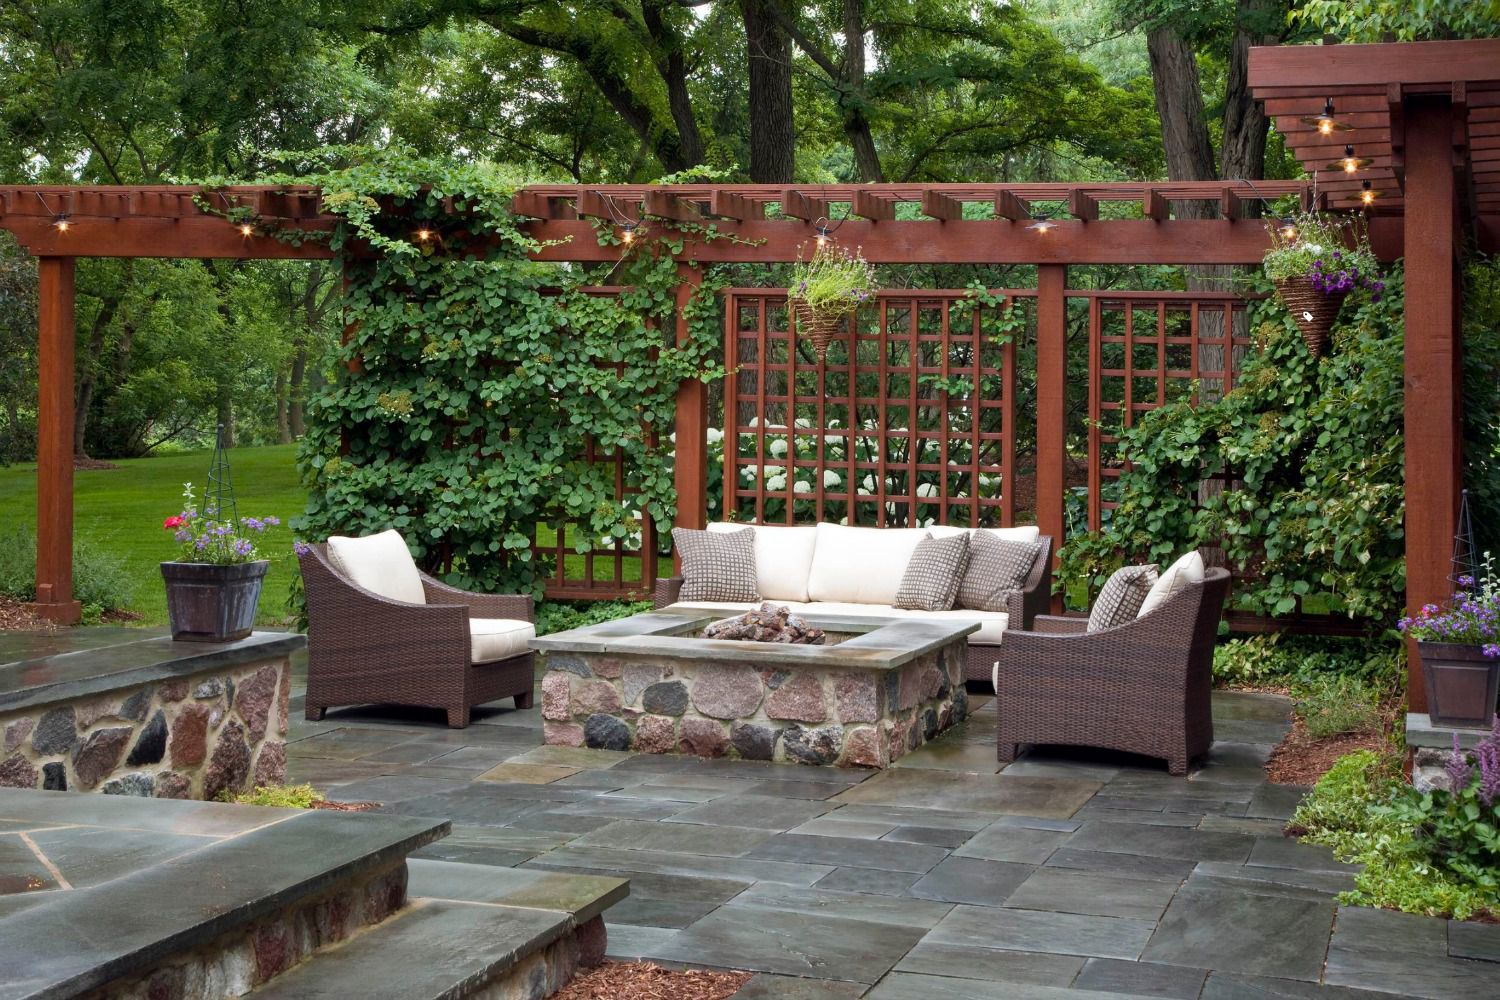 50 Backyard Landscaping Ideas To Inspire You throughout Landscaping Ideas For Small Backyard